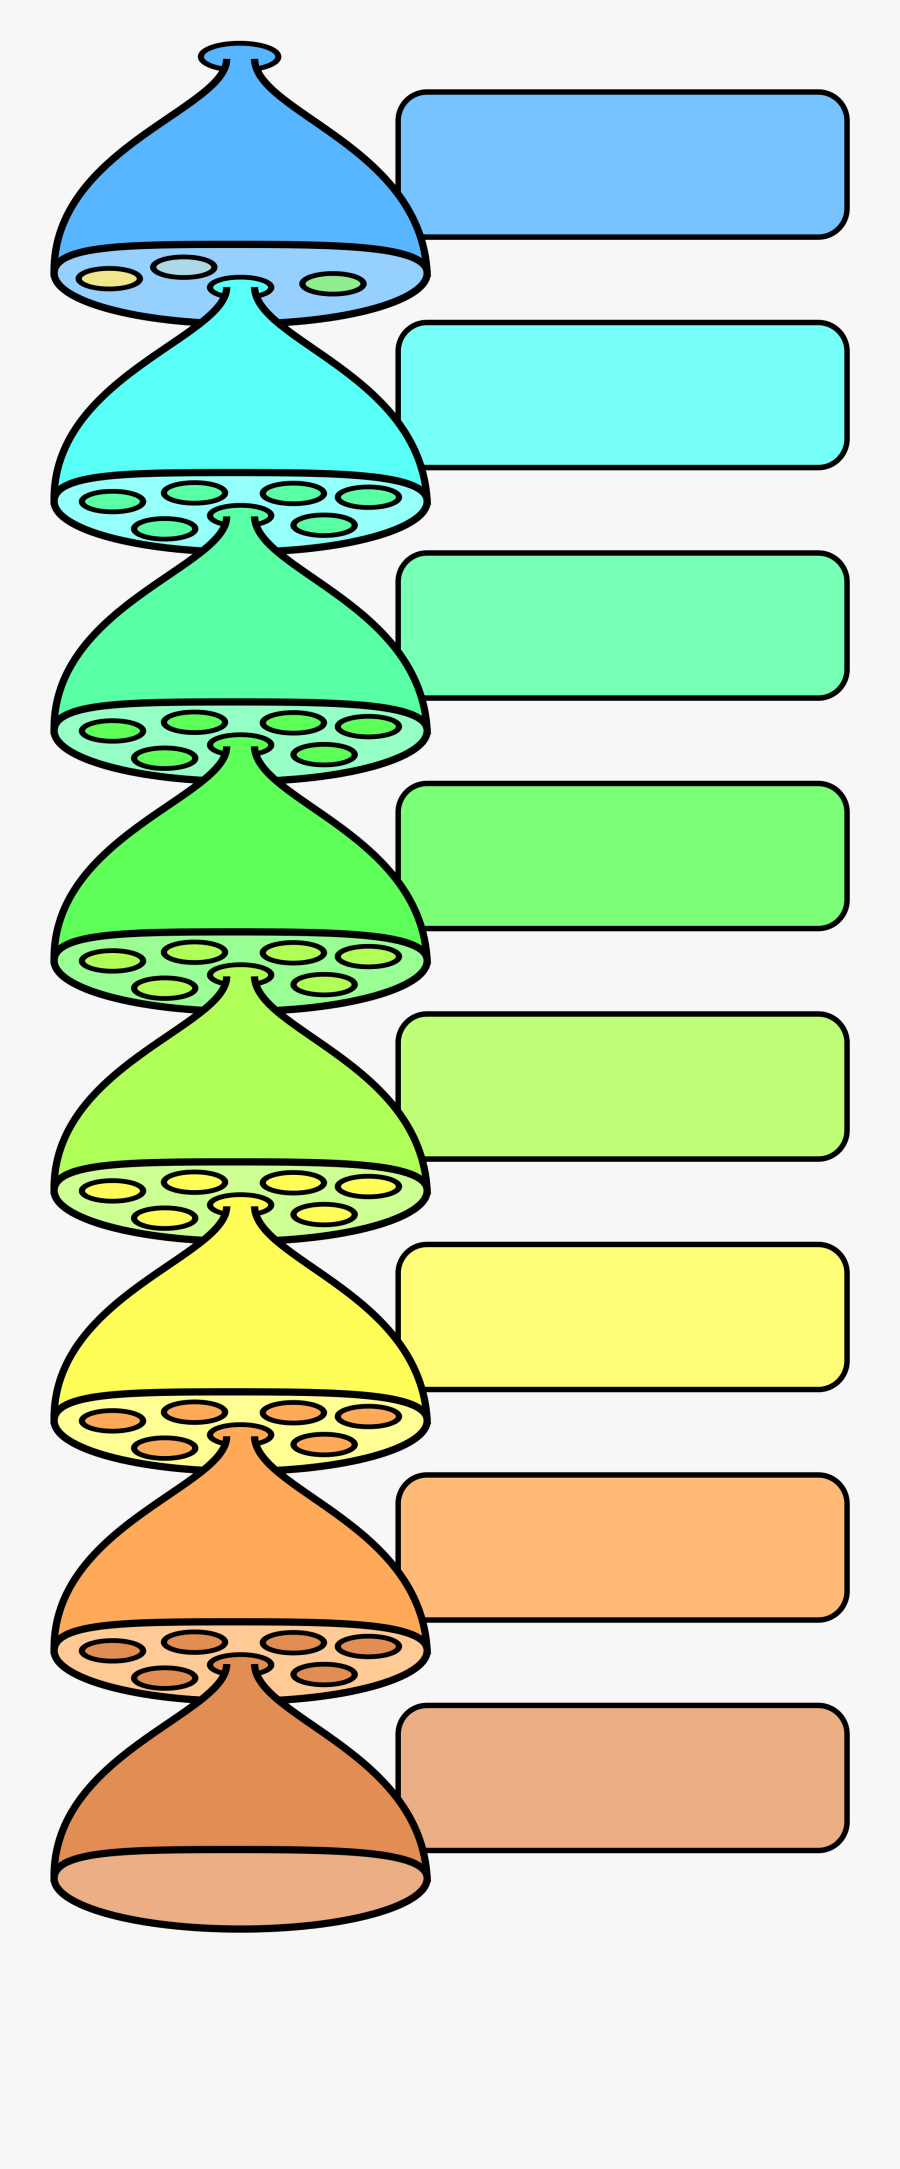 Venus Fly Trap Taxonomy - Diversity In Living Organisms, Transparent Clipart